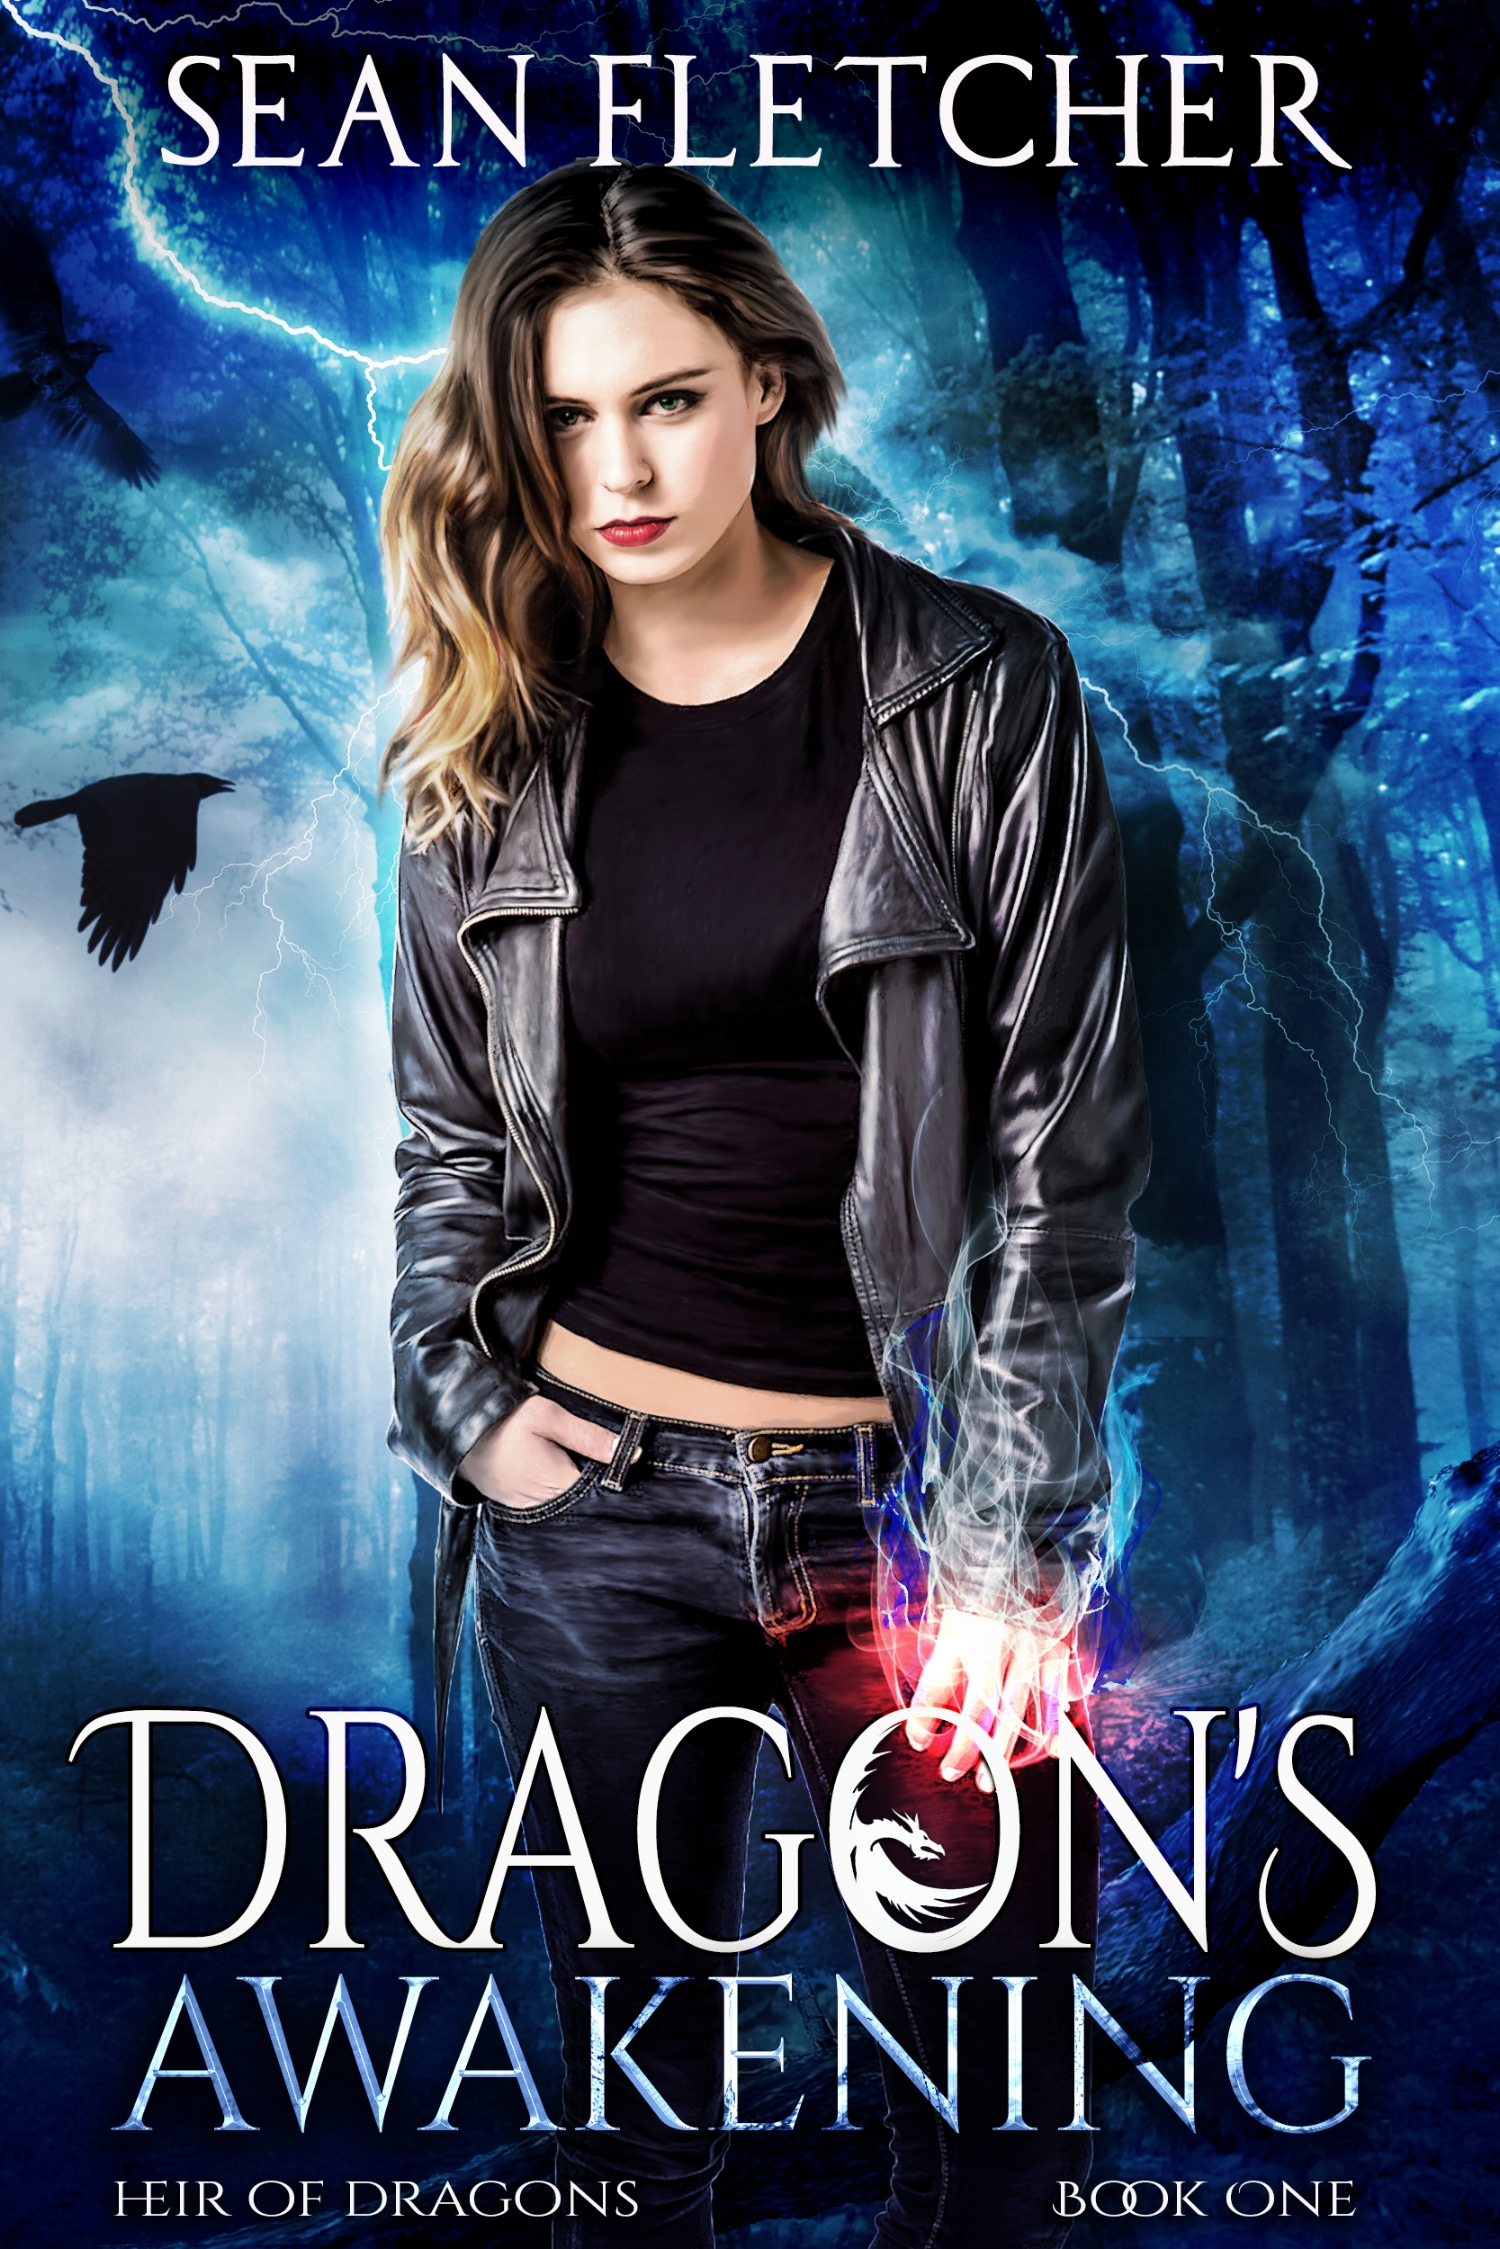 Dragon's Awakening - What she becomes may kill her, if the Slayers don't kill her first.Kaylee Richards just blasted her first date with lightning. She has no idea how, but when the creep pulls a sword on her, what's a girl to do? Turns out Kaylee is a dragon-kin, a half dragon/half human with the rare power to summon storms. The problem? Her newly-discovered magic has attracted the wrong kind of attention: Slayers, a murderous ancient order dedicated to eradicating all dragon-kin. They're planning something big. Something deadly. And they need Kaylee to do it.